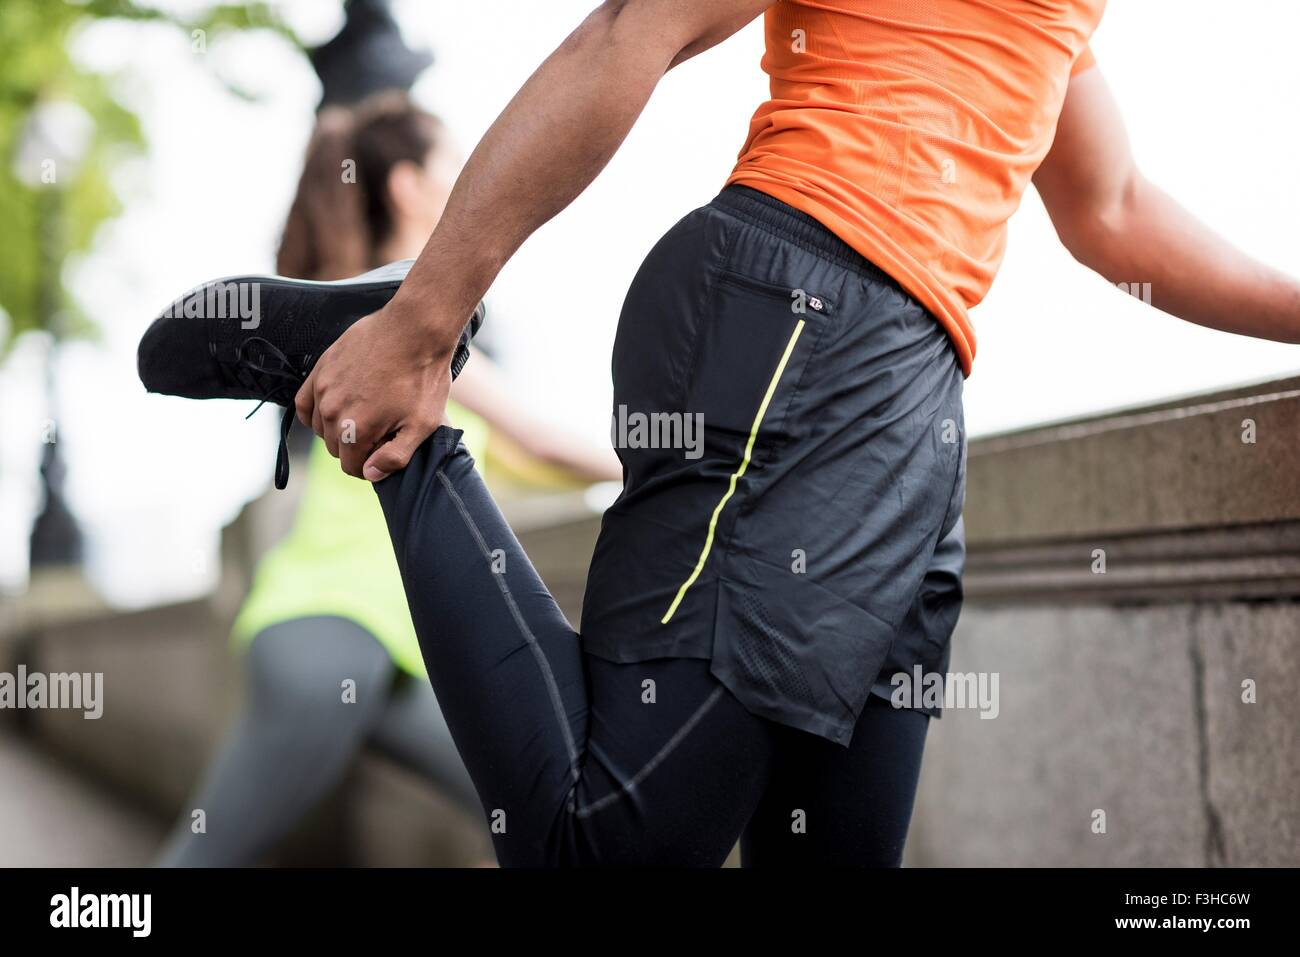 Male and female city runners stretching legs - Stock Image